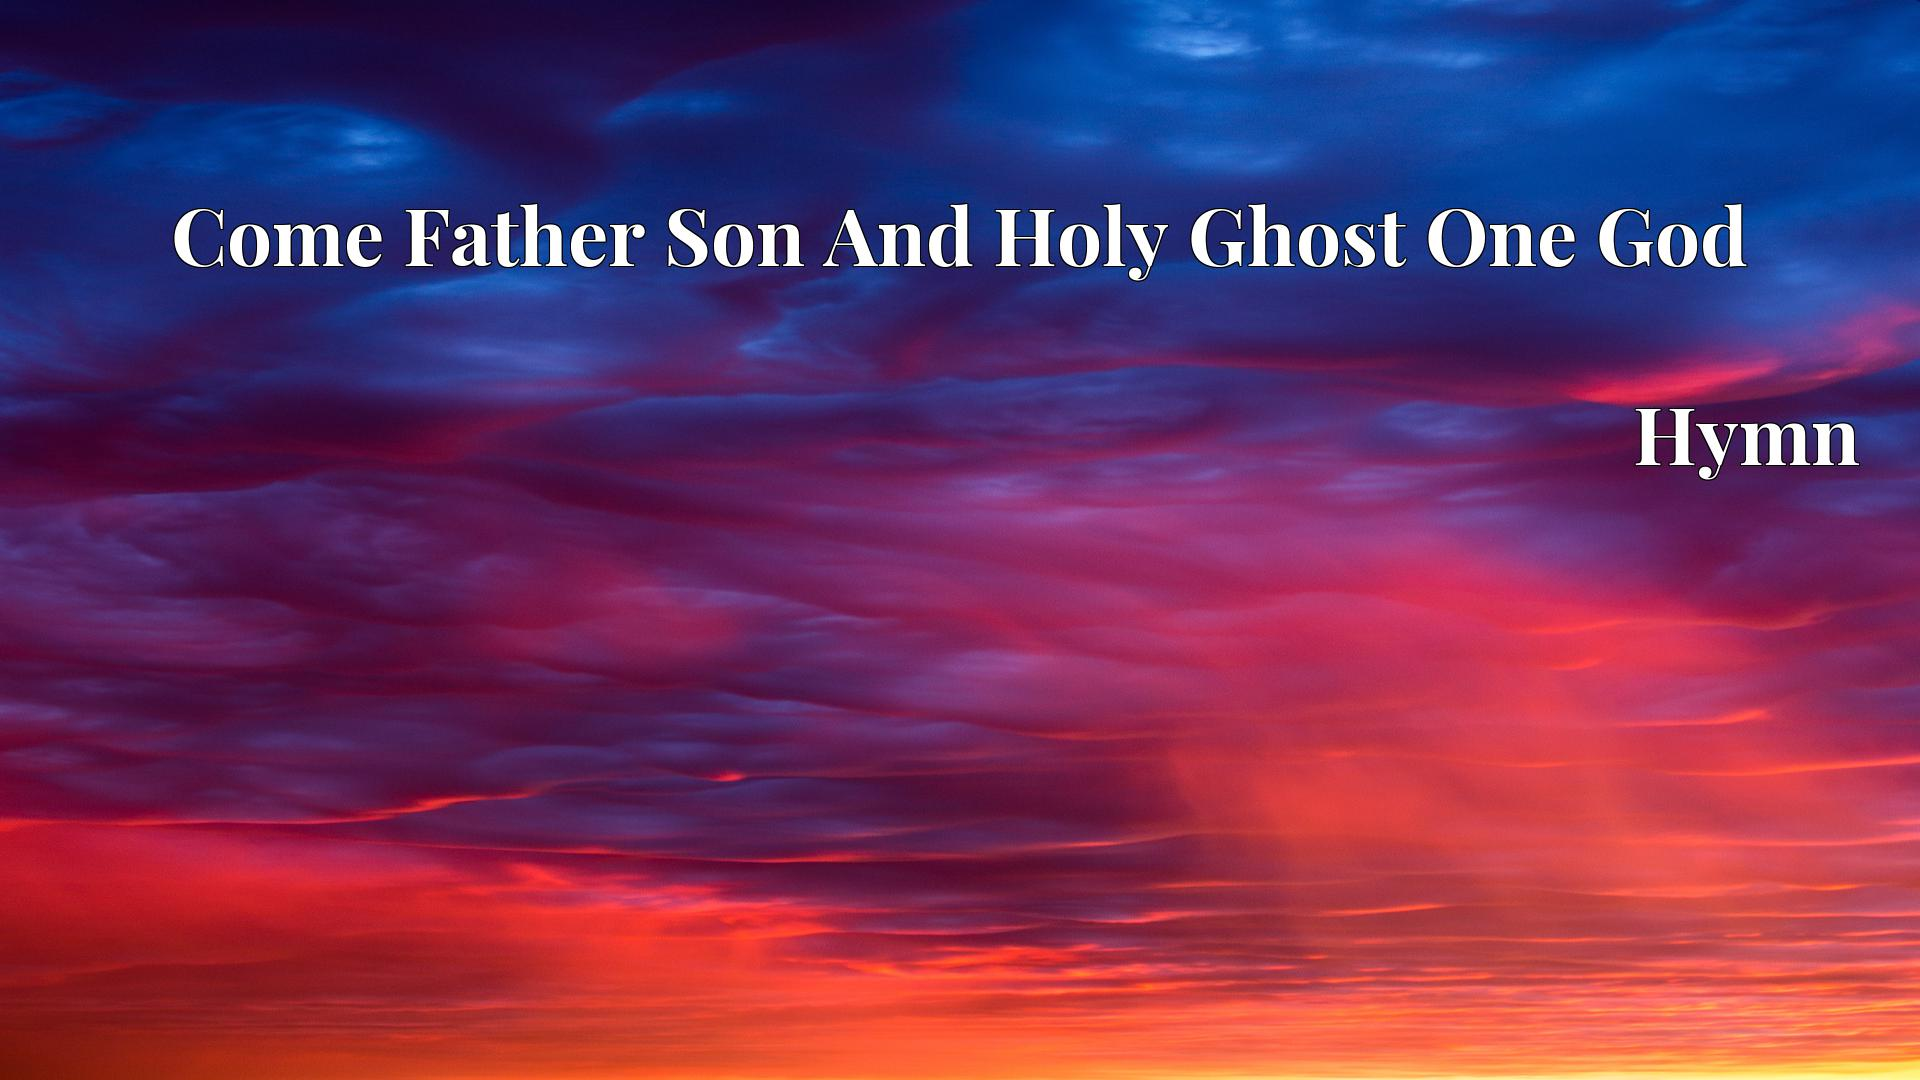 Come Father Son And Holy Ghost One God - Hymn